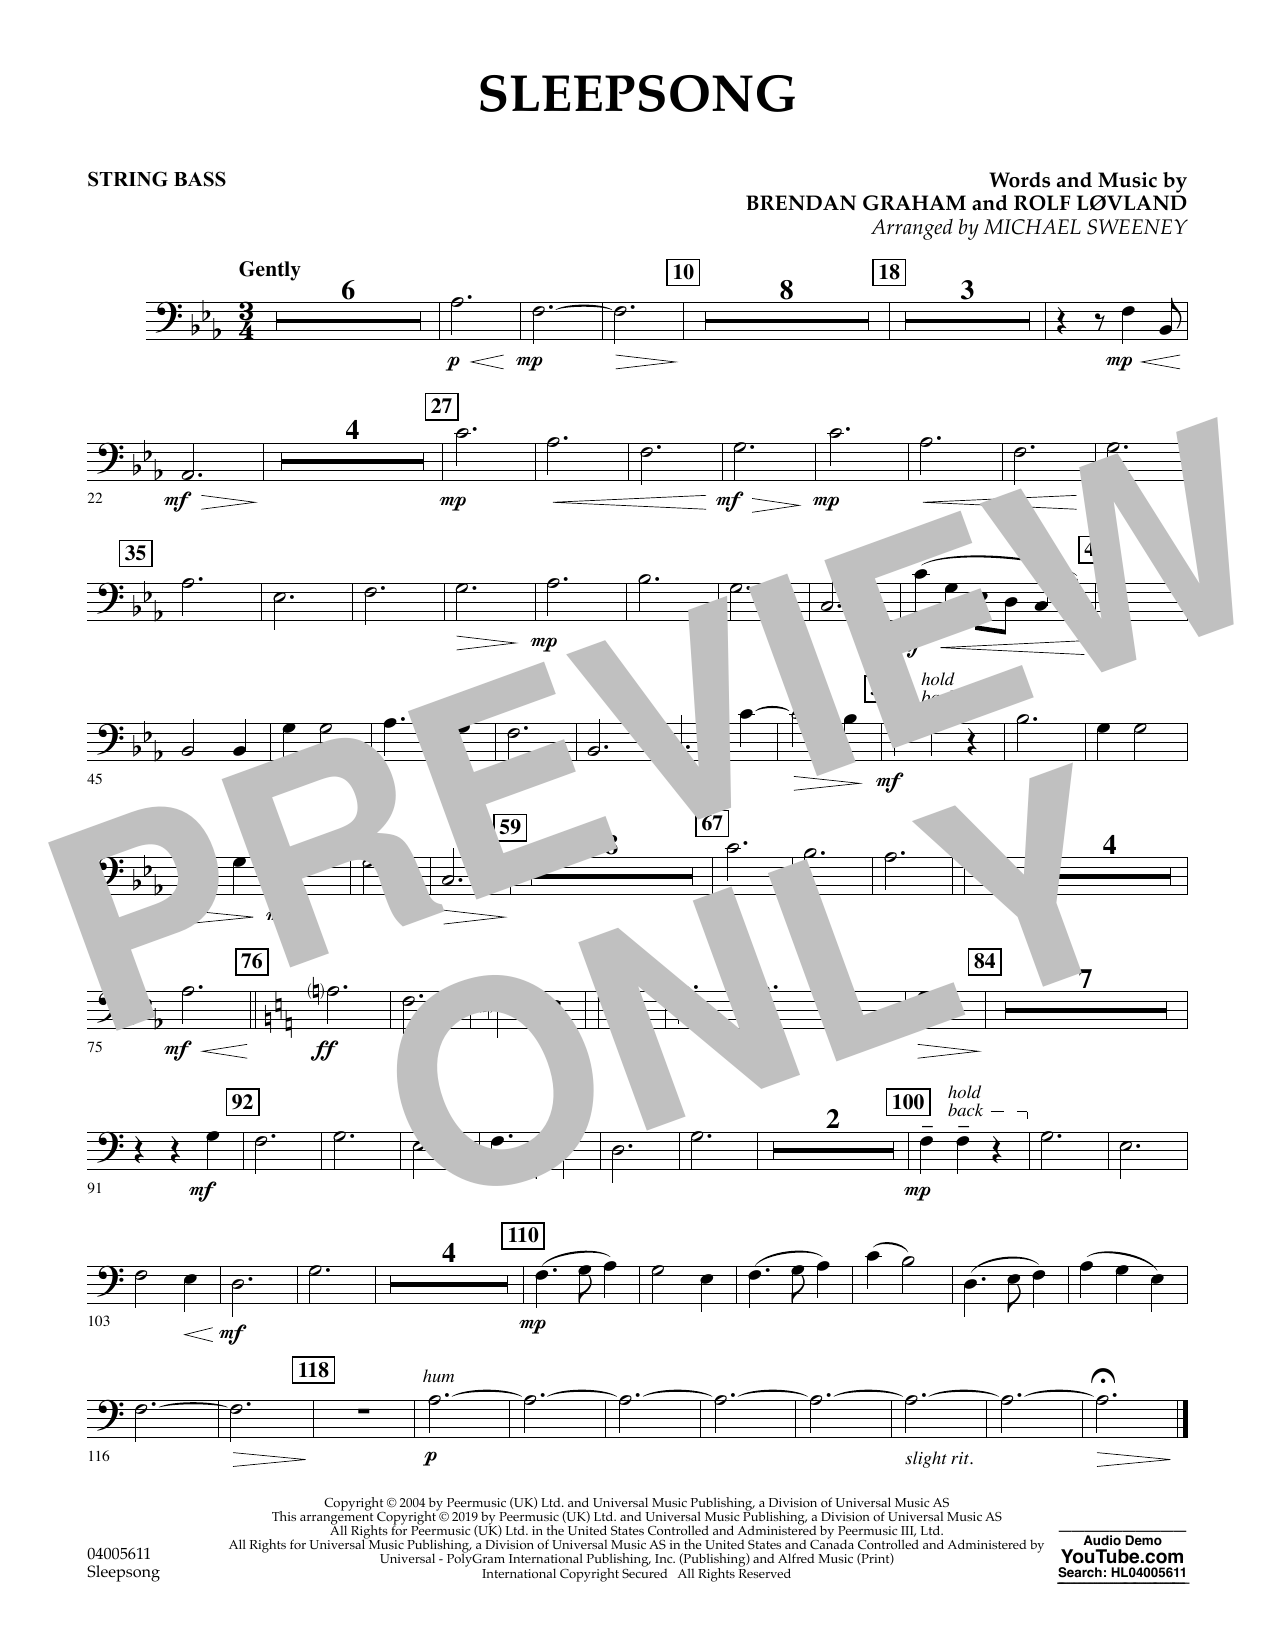 Secret Garden Sleepsong (arr. Michael Sweeney) - String Bass sheet music preview music notes and score for Concert Band including 1 page(s)